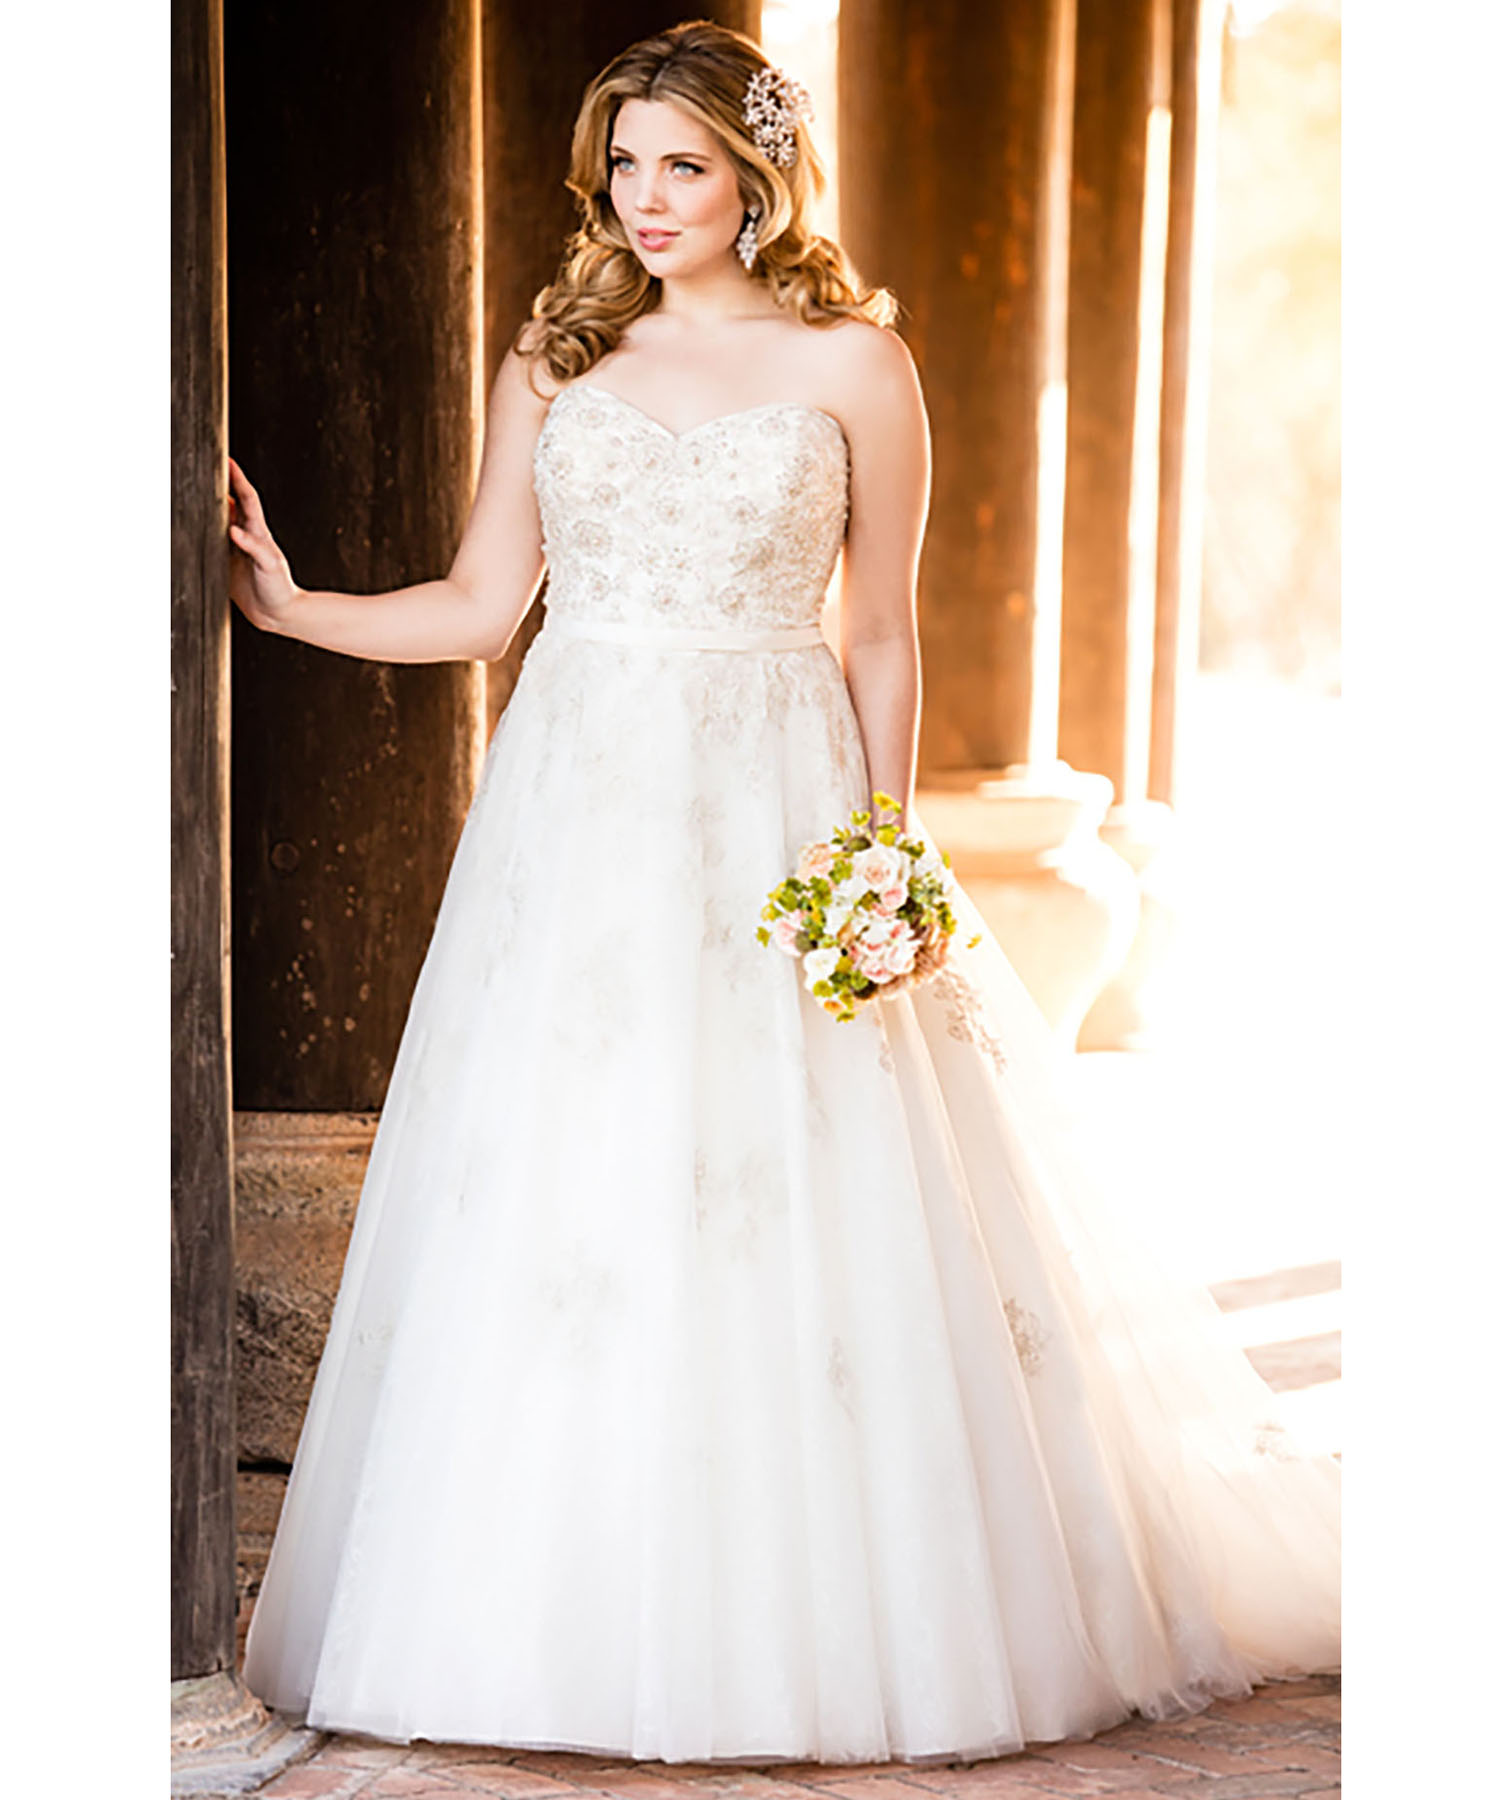 Silver plus size wedding dresses with sleeves